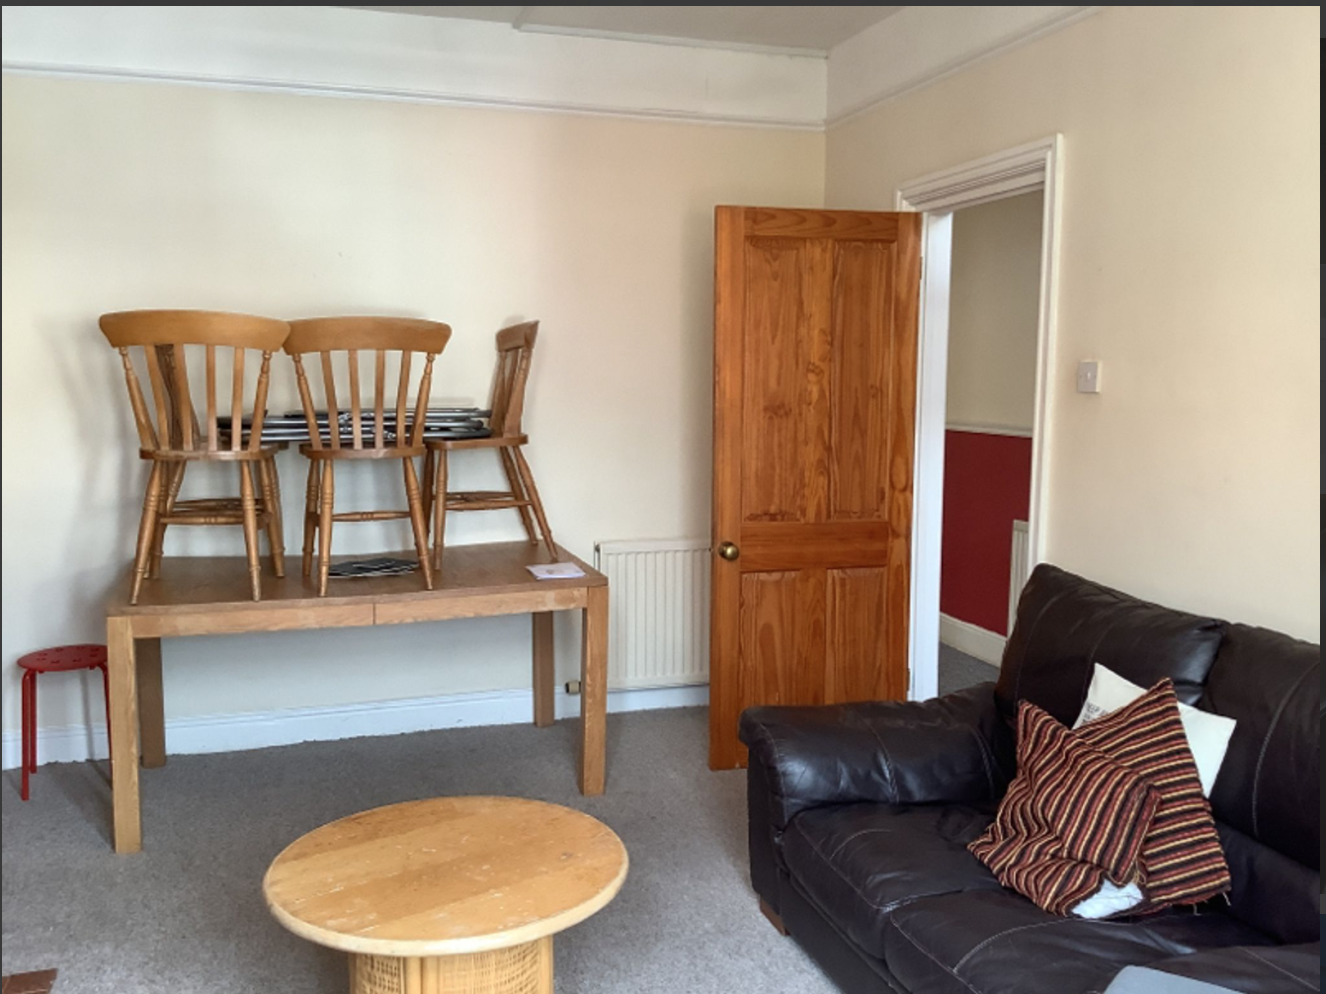 4 bedroom student house in Oldfield Park, Bath